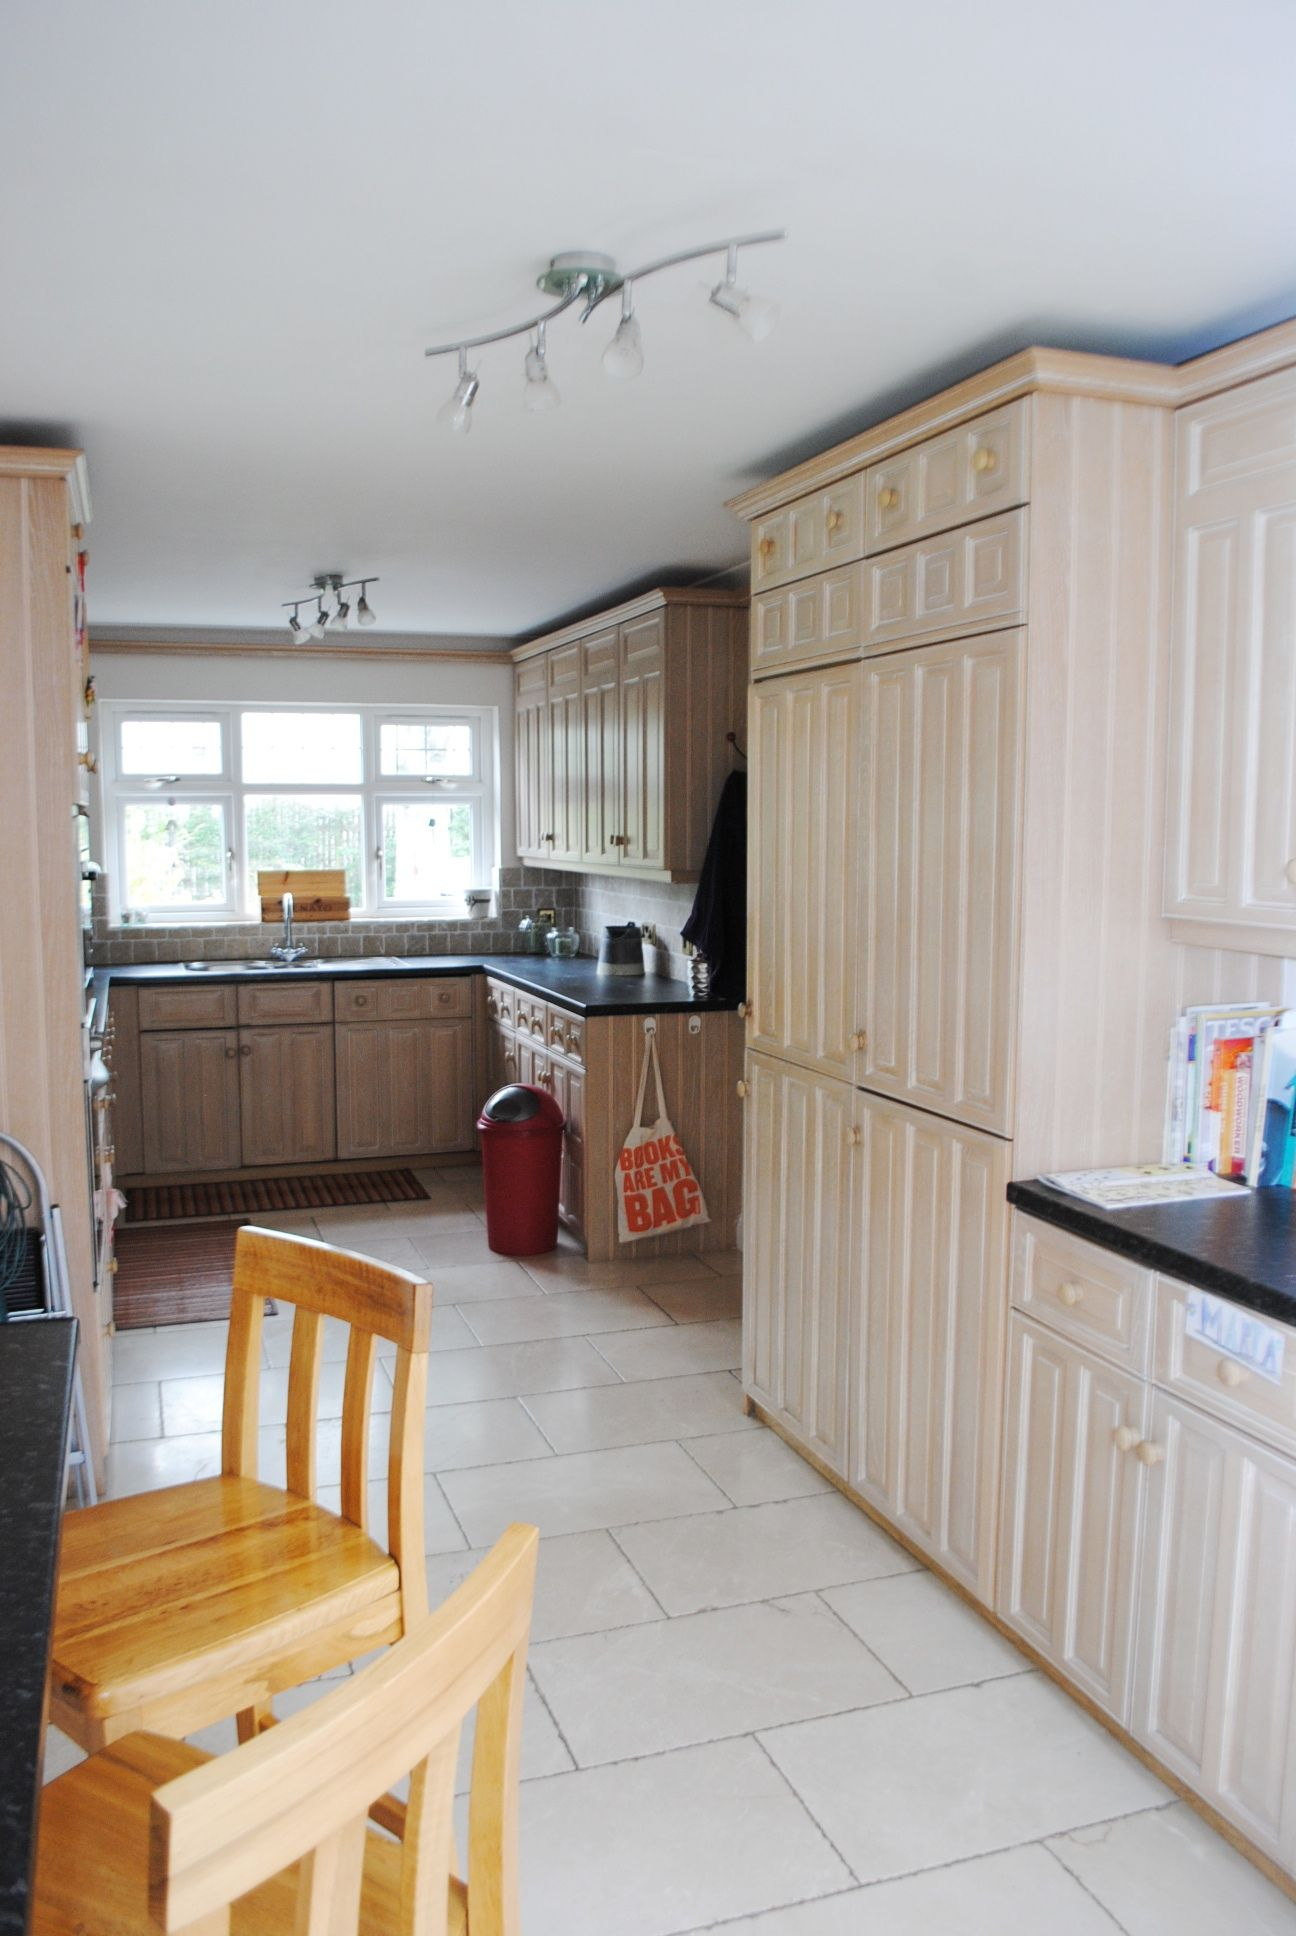 4 bedroom detached house SSTC in Mount Murray - Property photograph